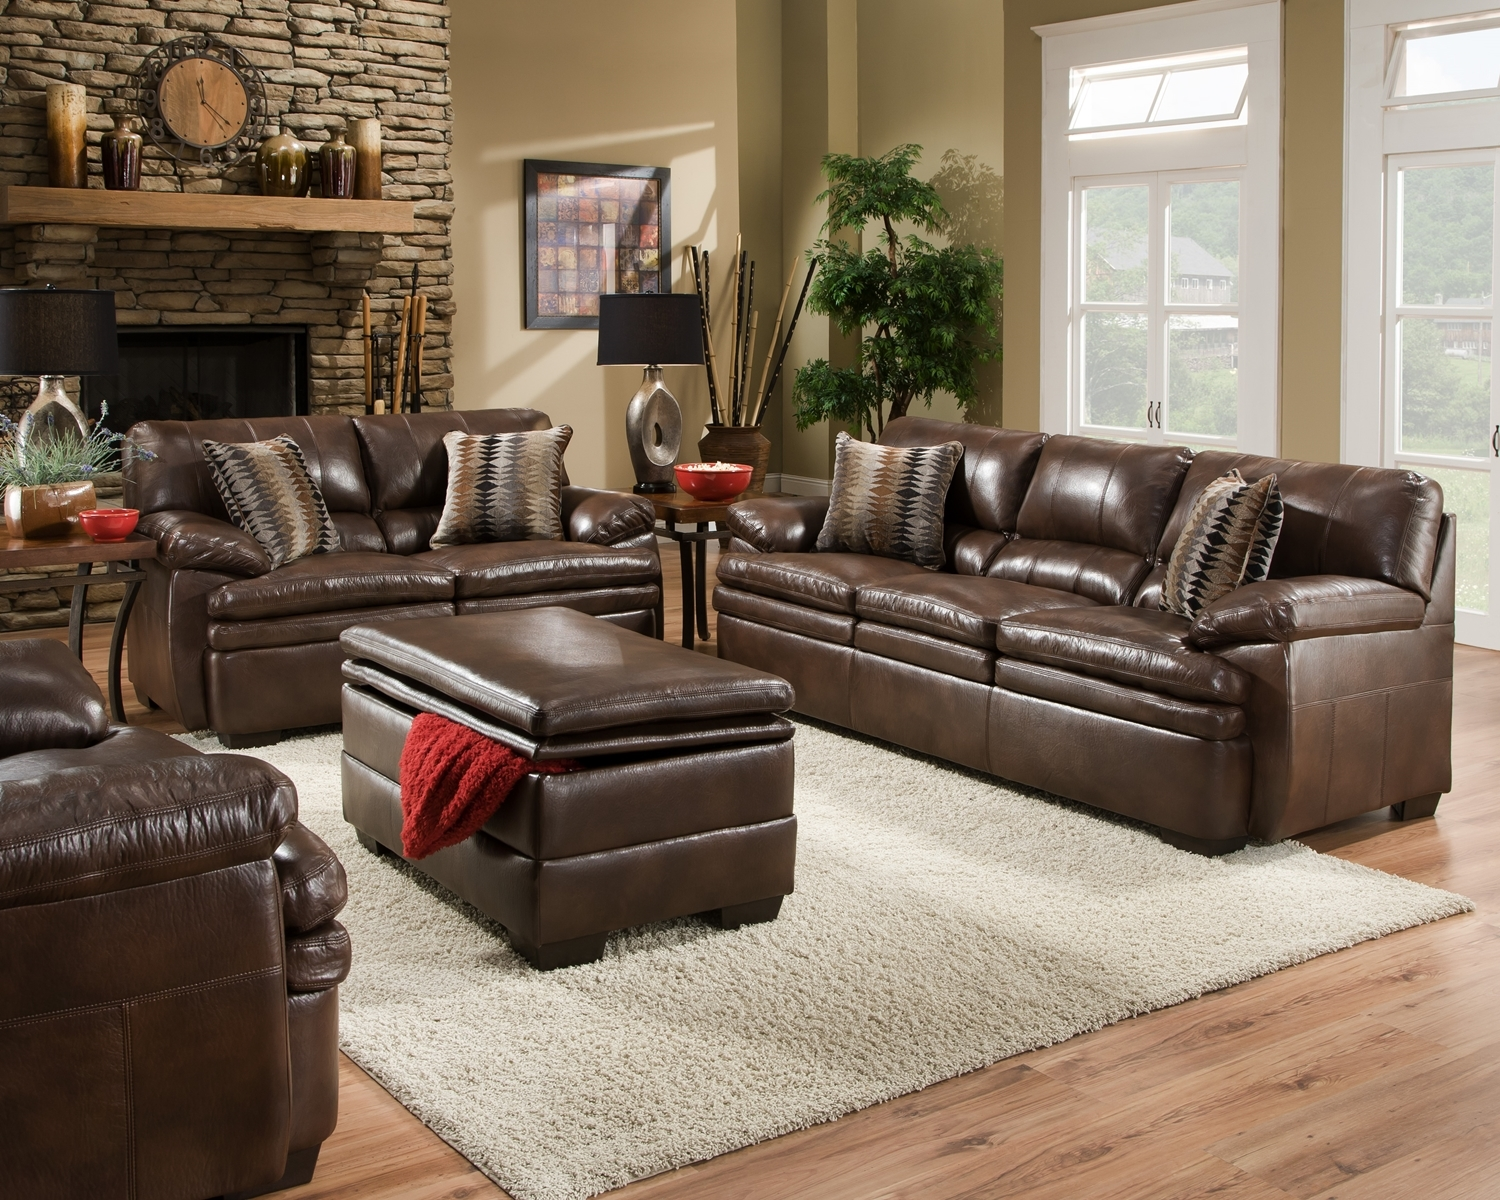 Brown leather living room furniture - Brown Bonded Leather Sofa Set Casual Living Room Furniture W Accent Pillows